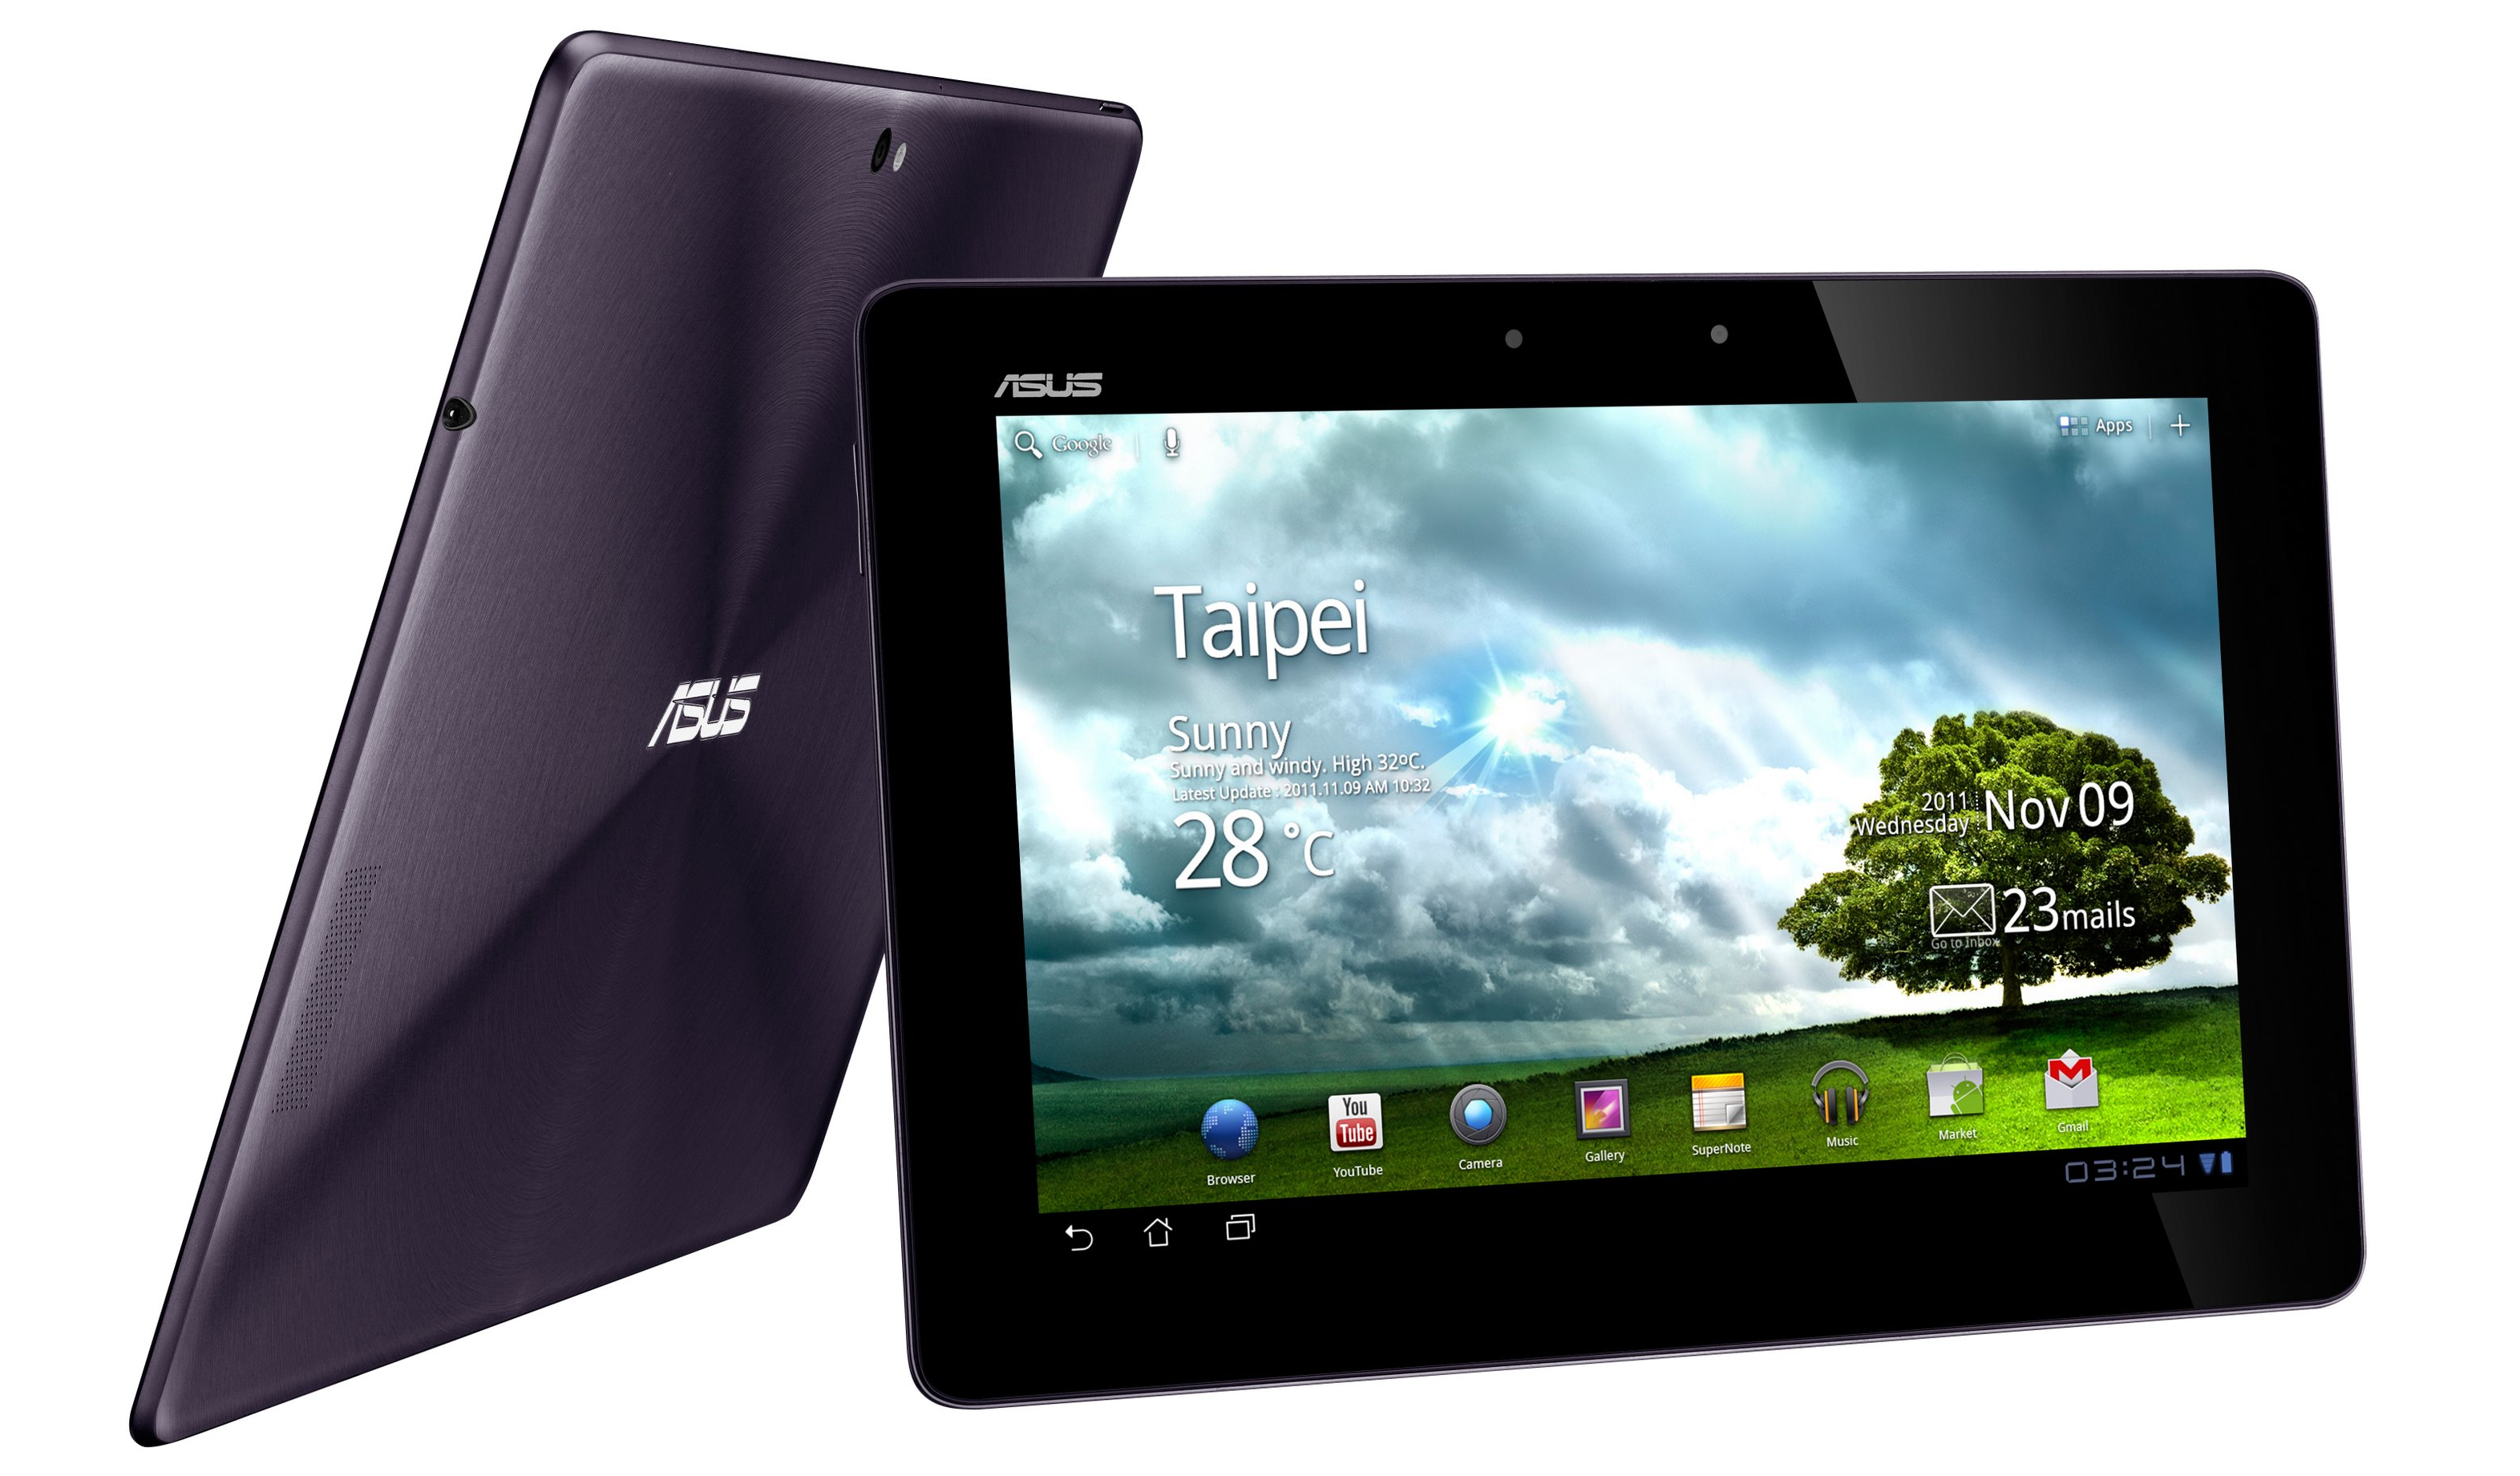 Asus Eee Pad Transformer Prime TF201 Reviews  Pros and Cons